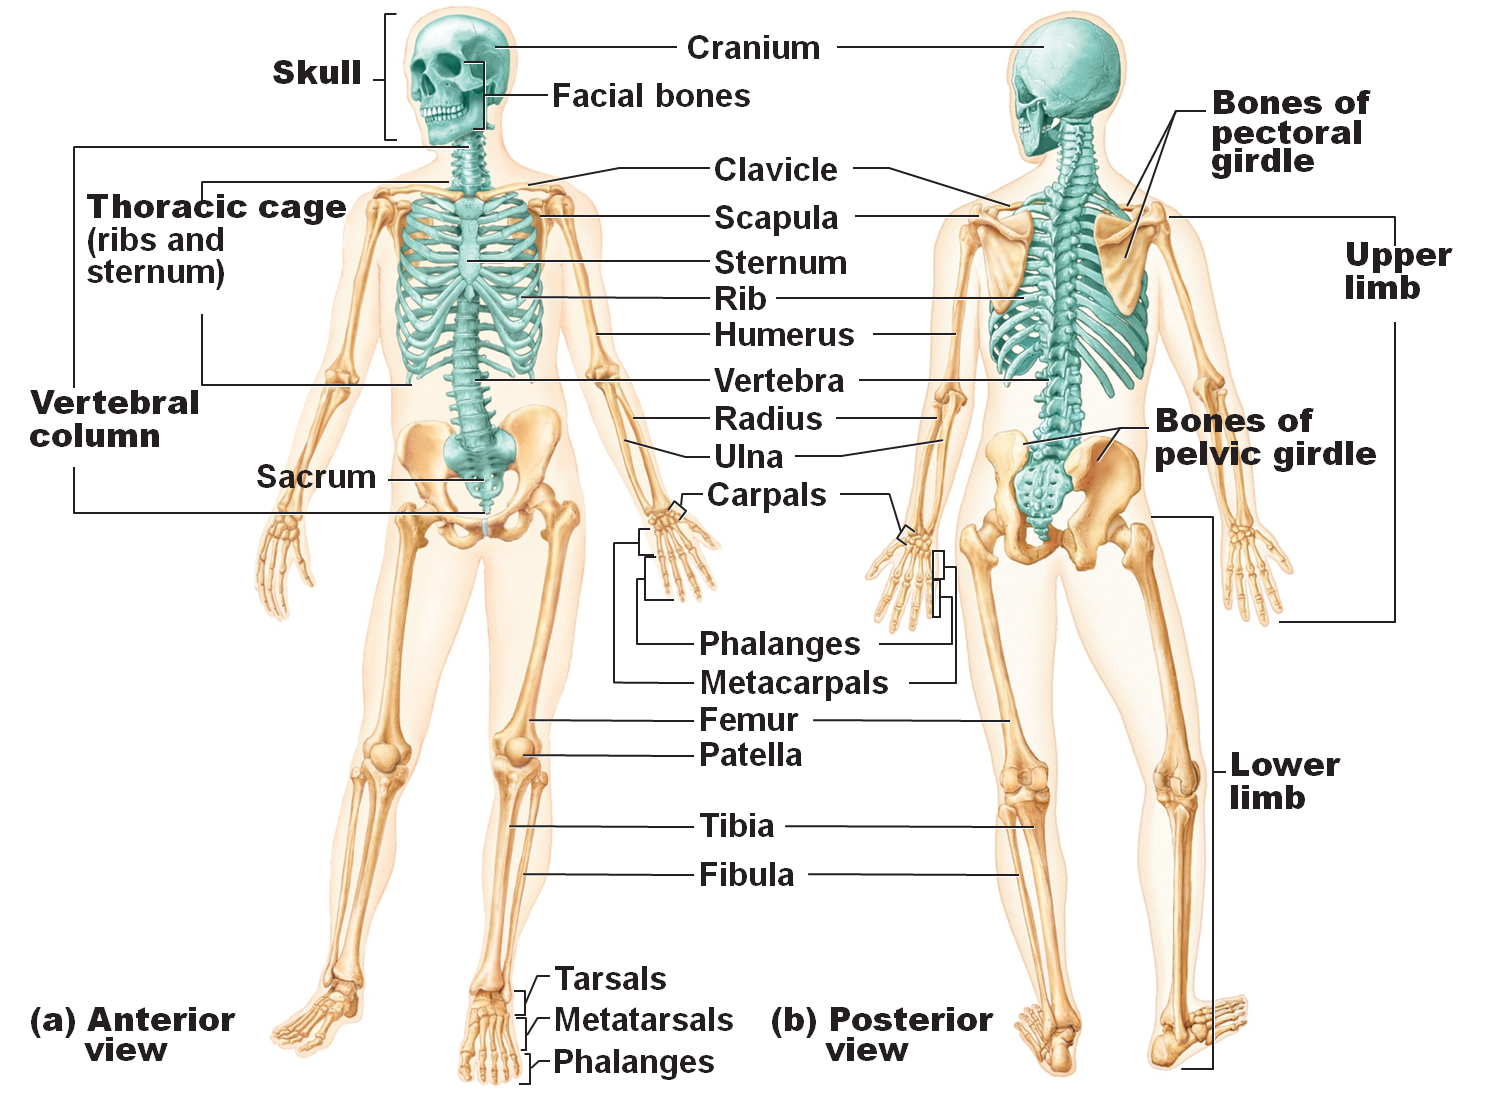 Axial skeleton in blue, appendicular skeleton in white | Anatomy ...